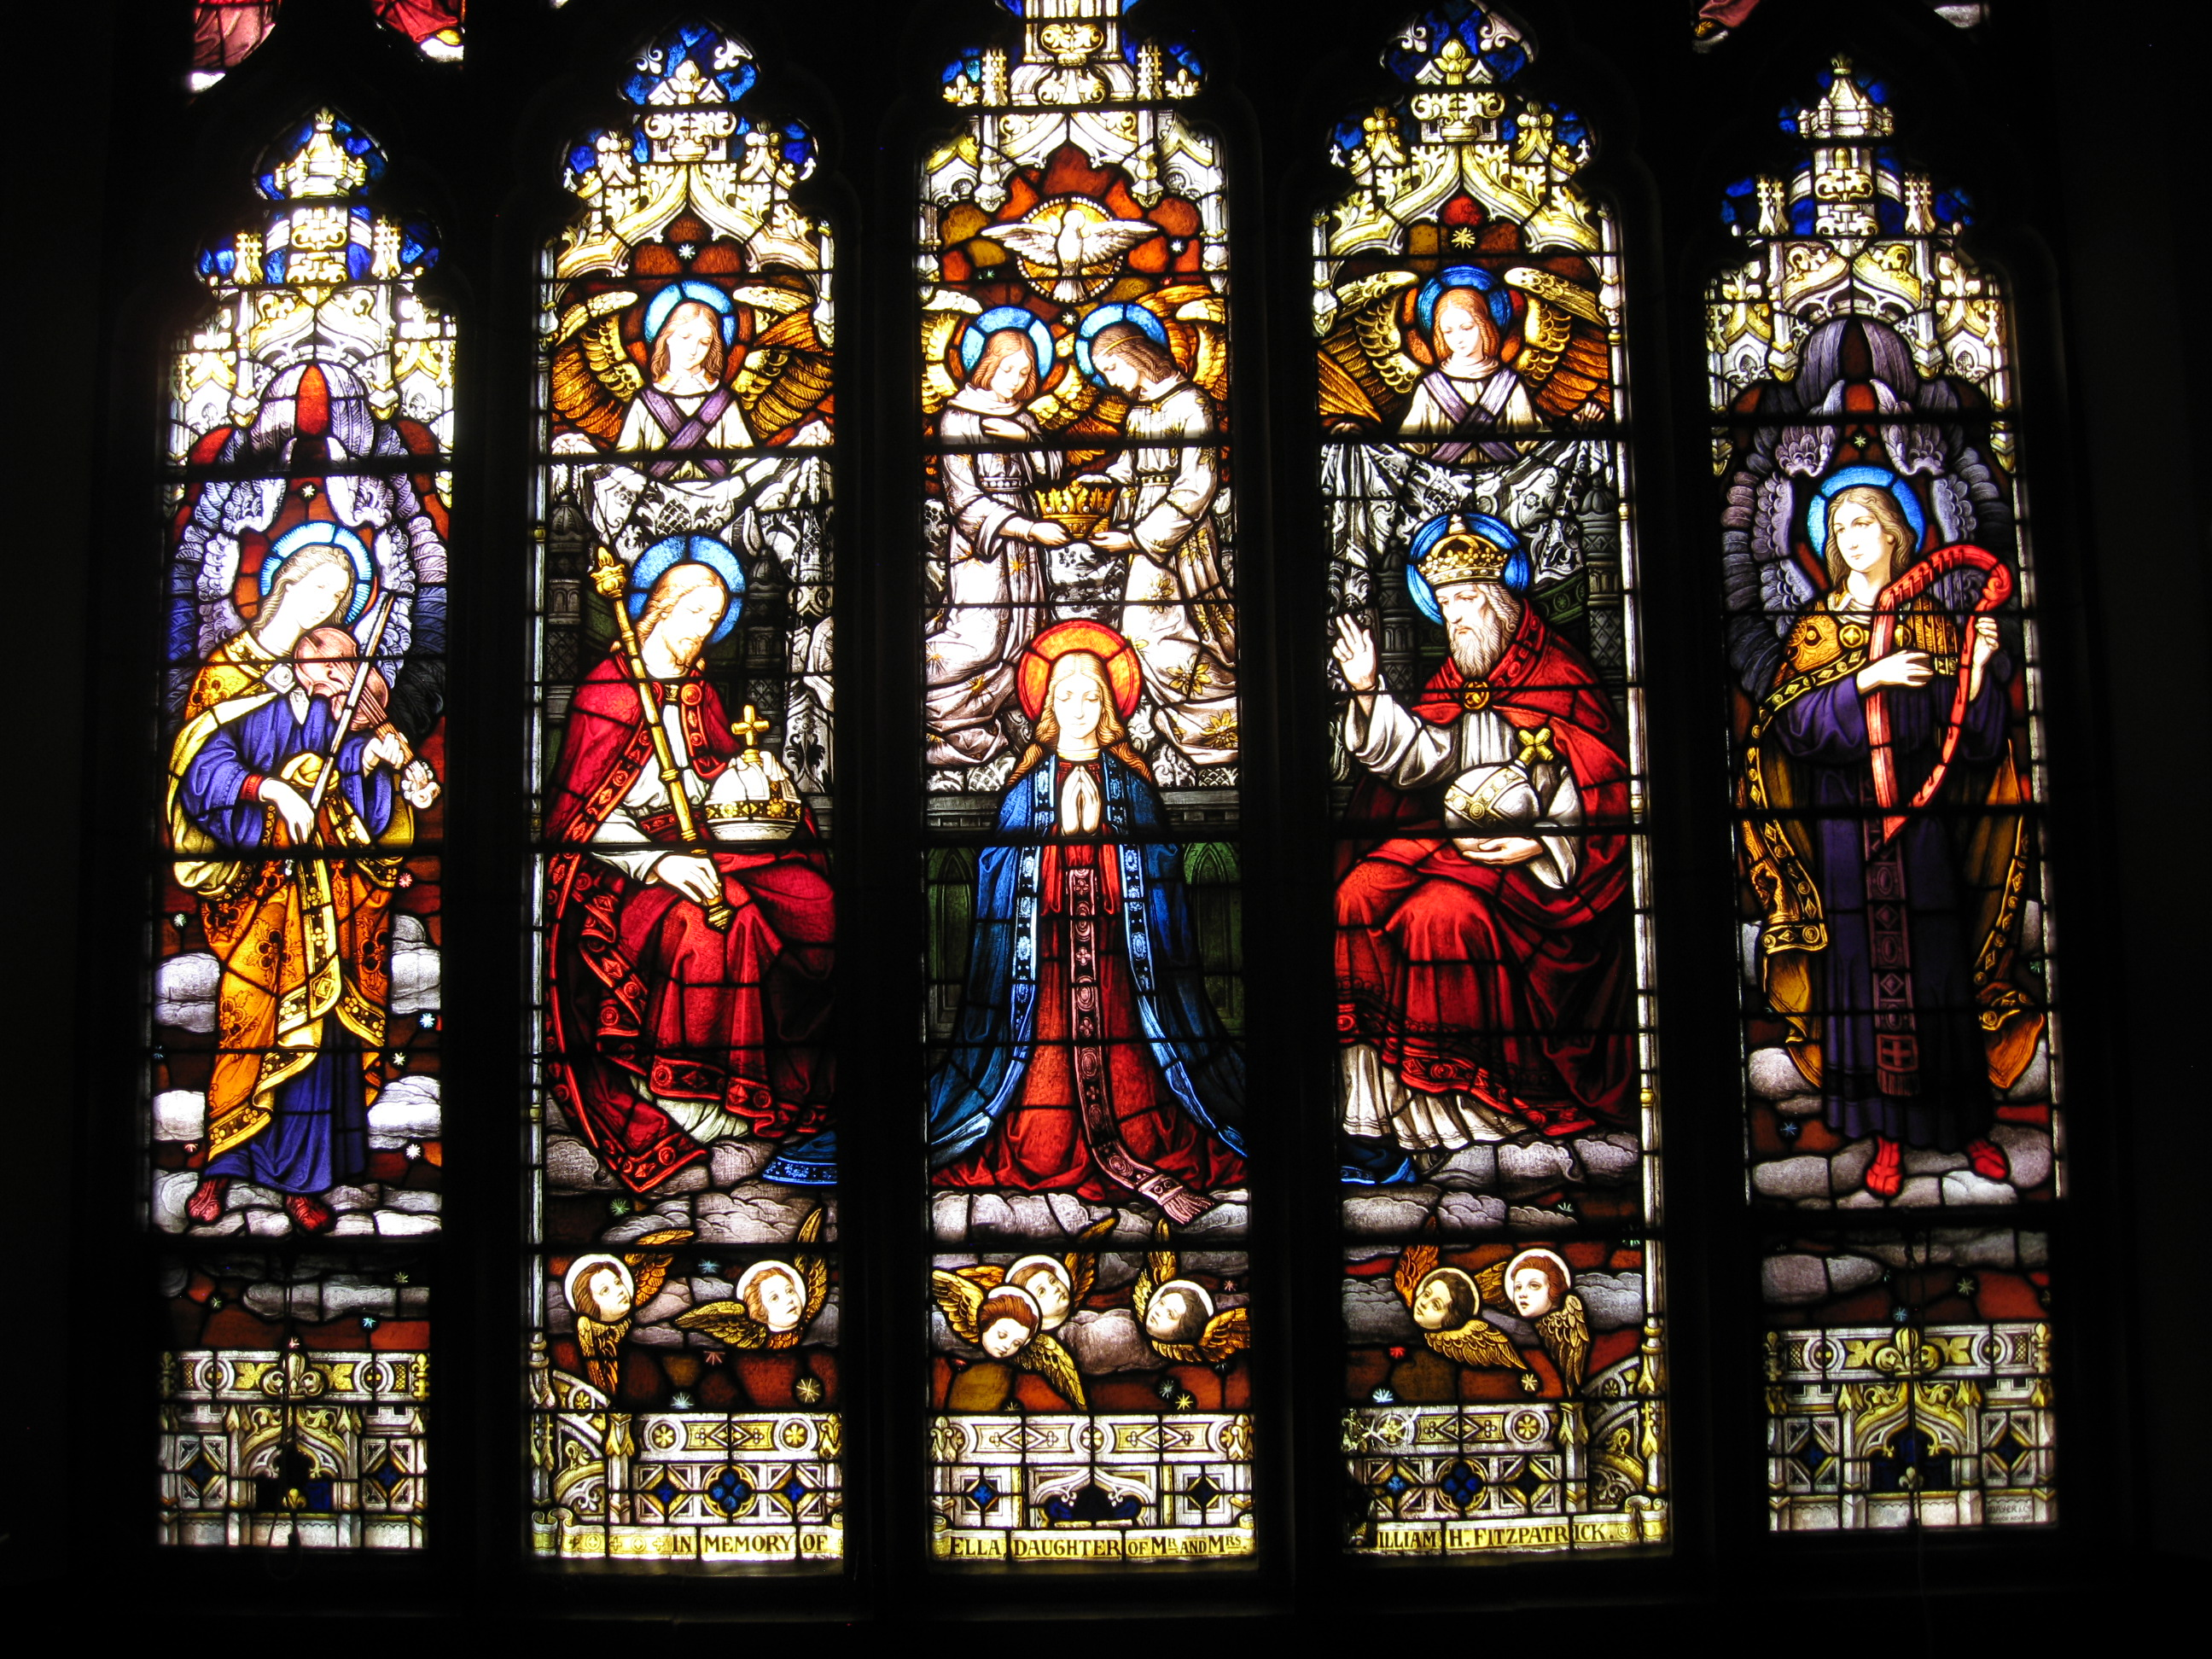 Choir loft window - Coronation